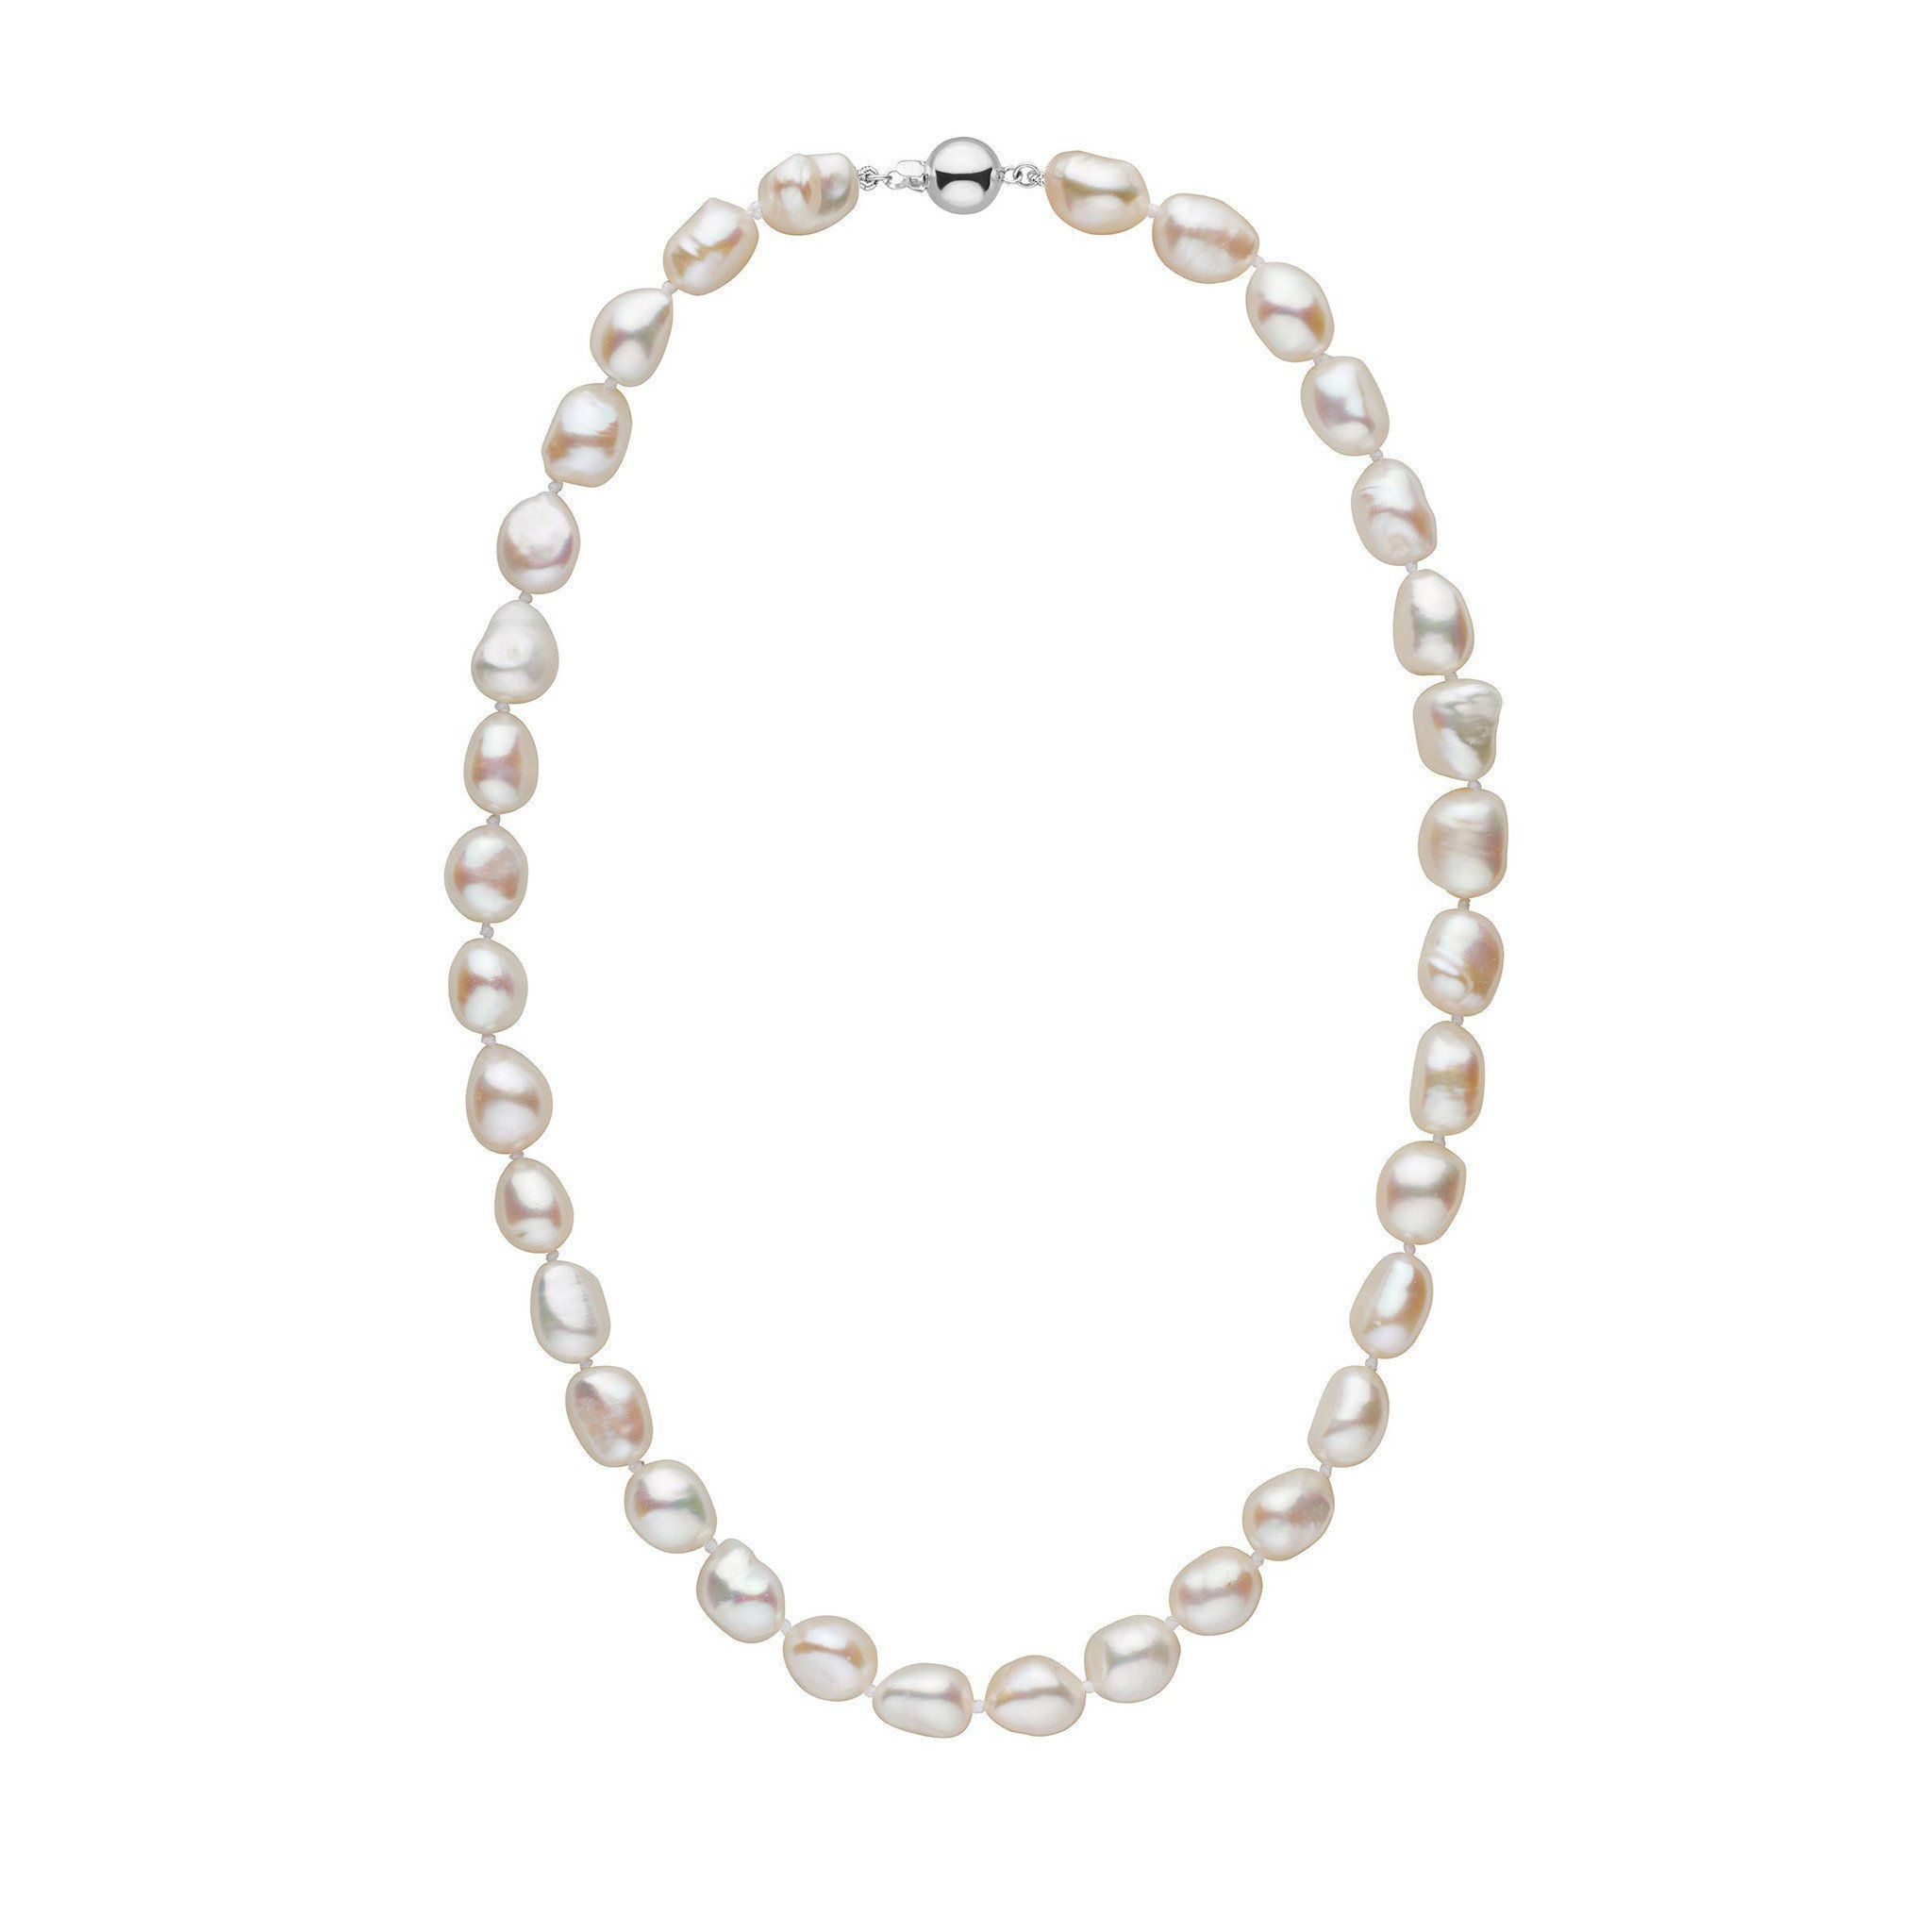 White Freshwater Baroque Pearl Necklace